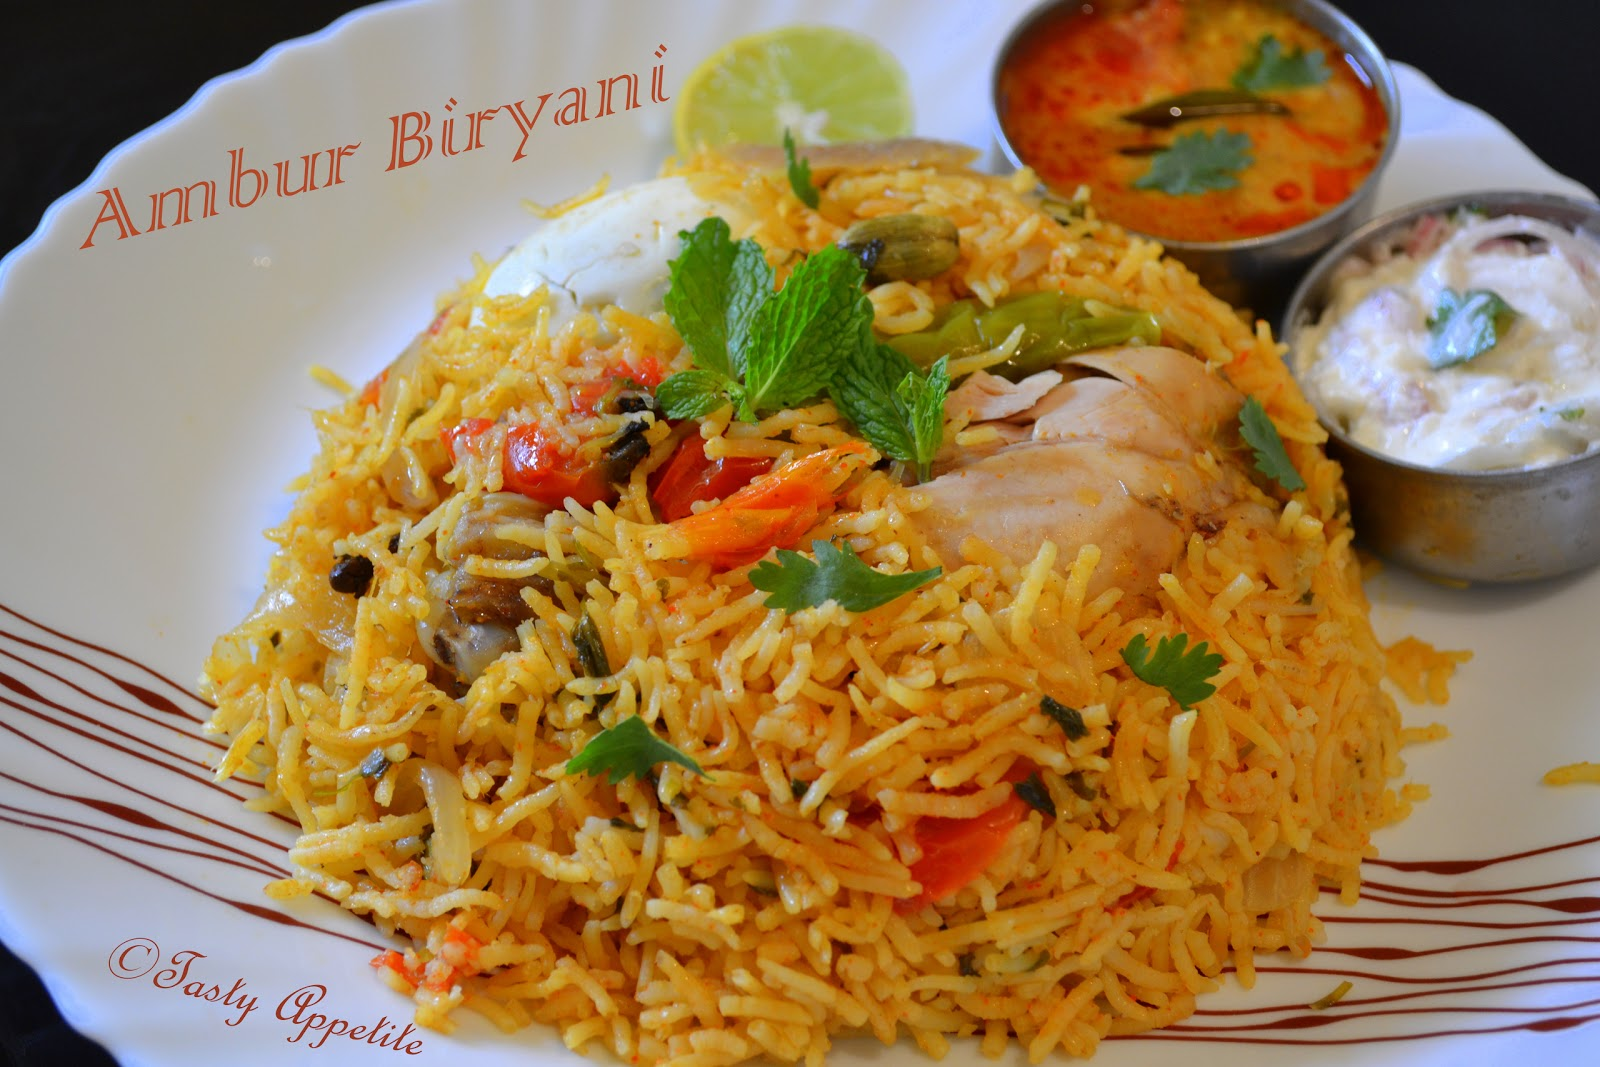 Ambur Chicken Biryani: Like us onYoutube for more Video Recipes